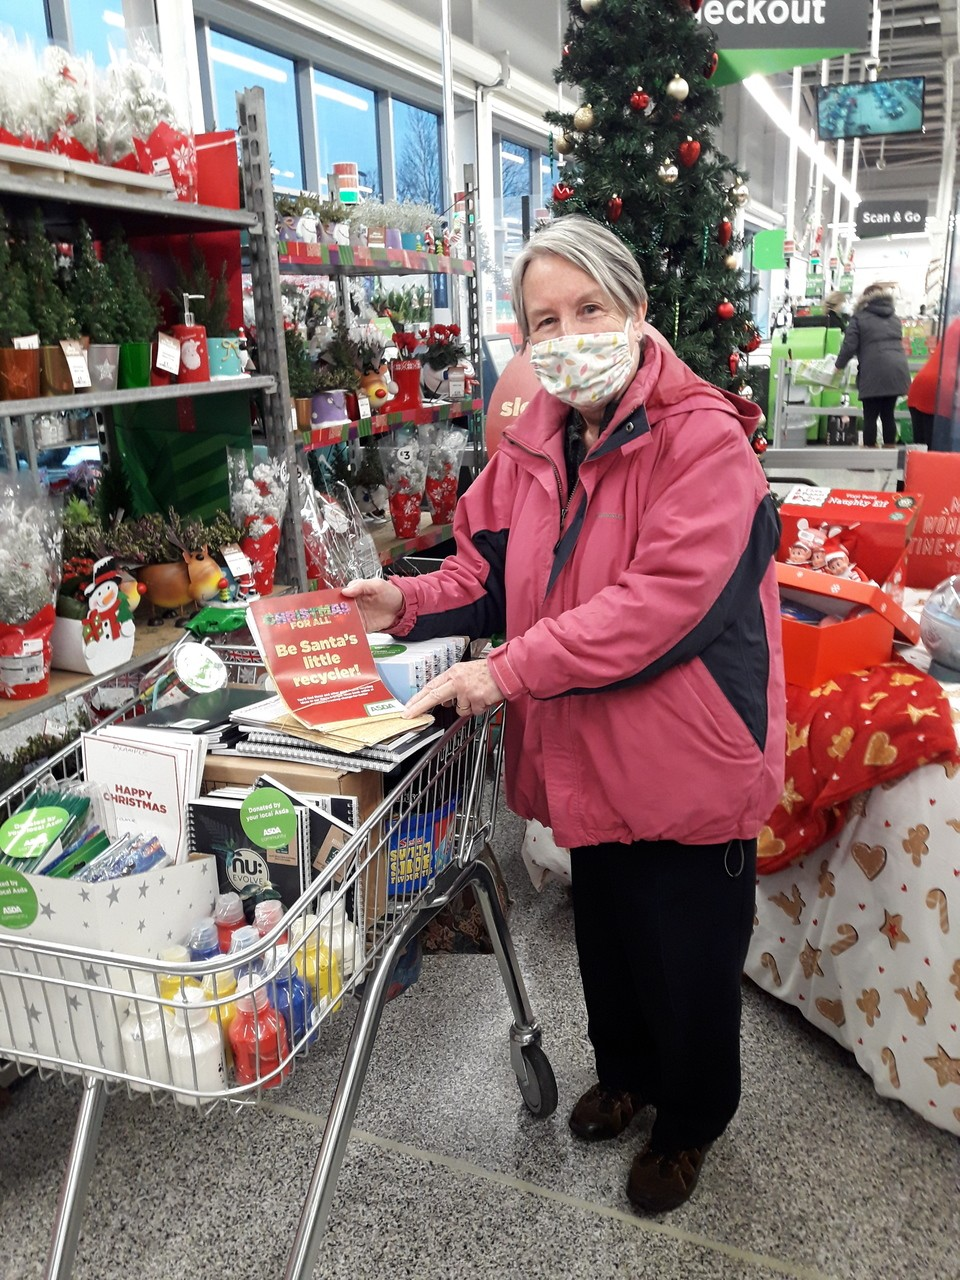 ST MARYS SCHOOL DONATION AND XMAS CARD ACTIVITY  | Asda Reddish